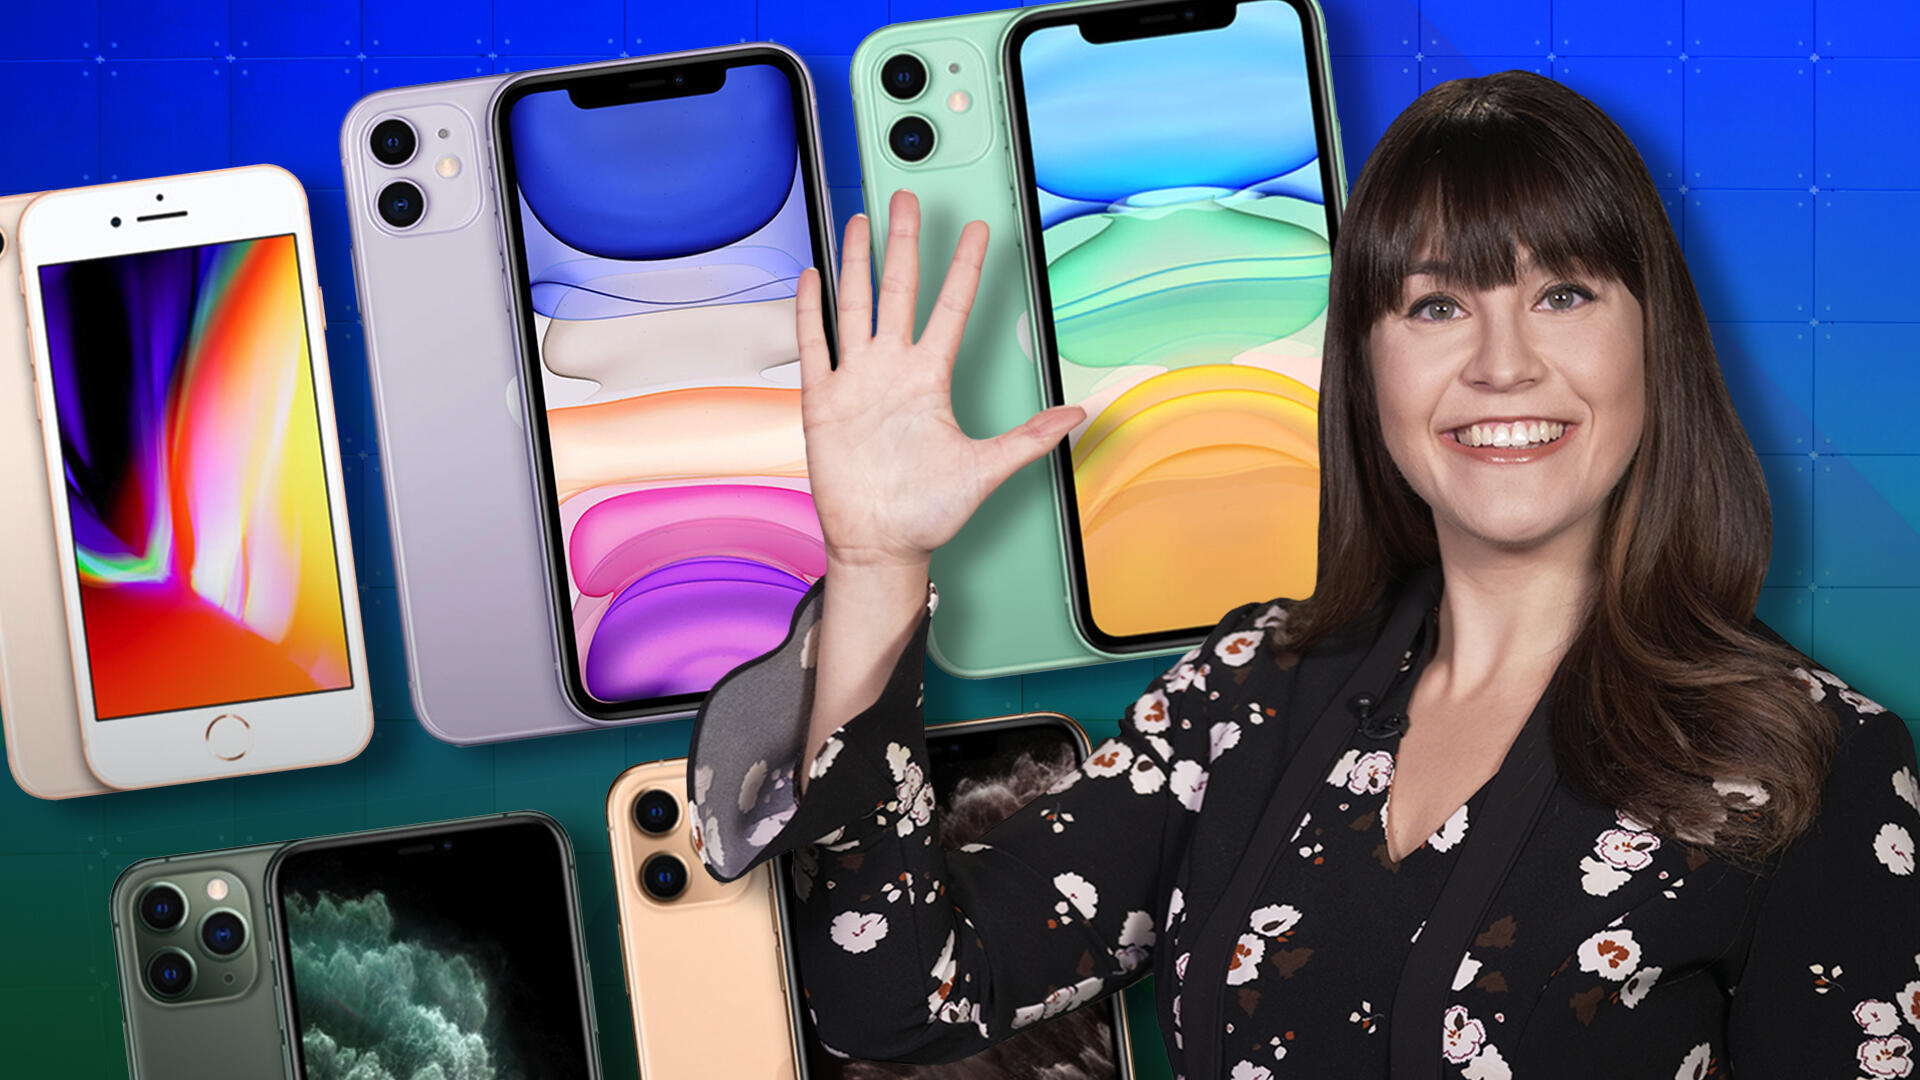 Video: Will there be five new iPhones in 2020?